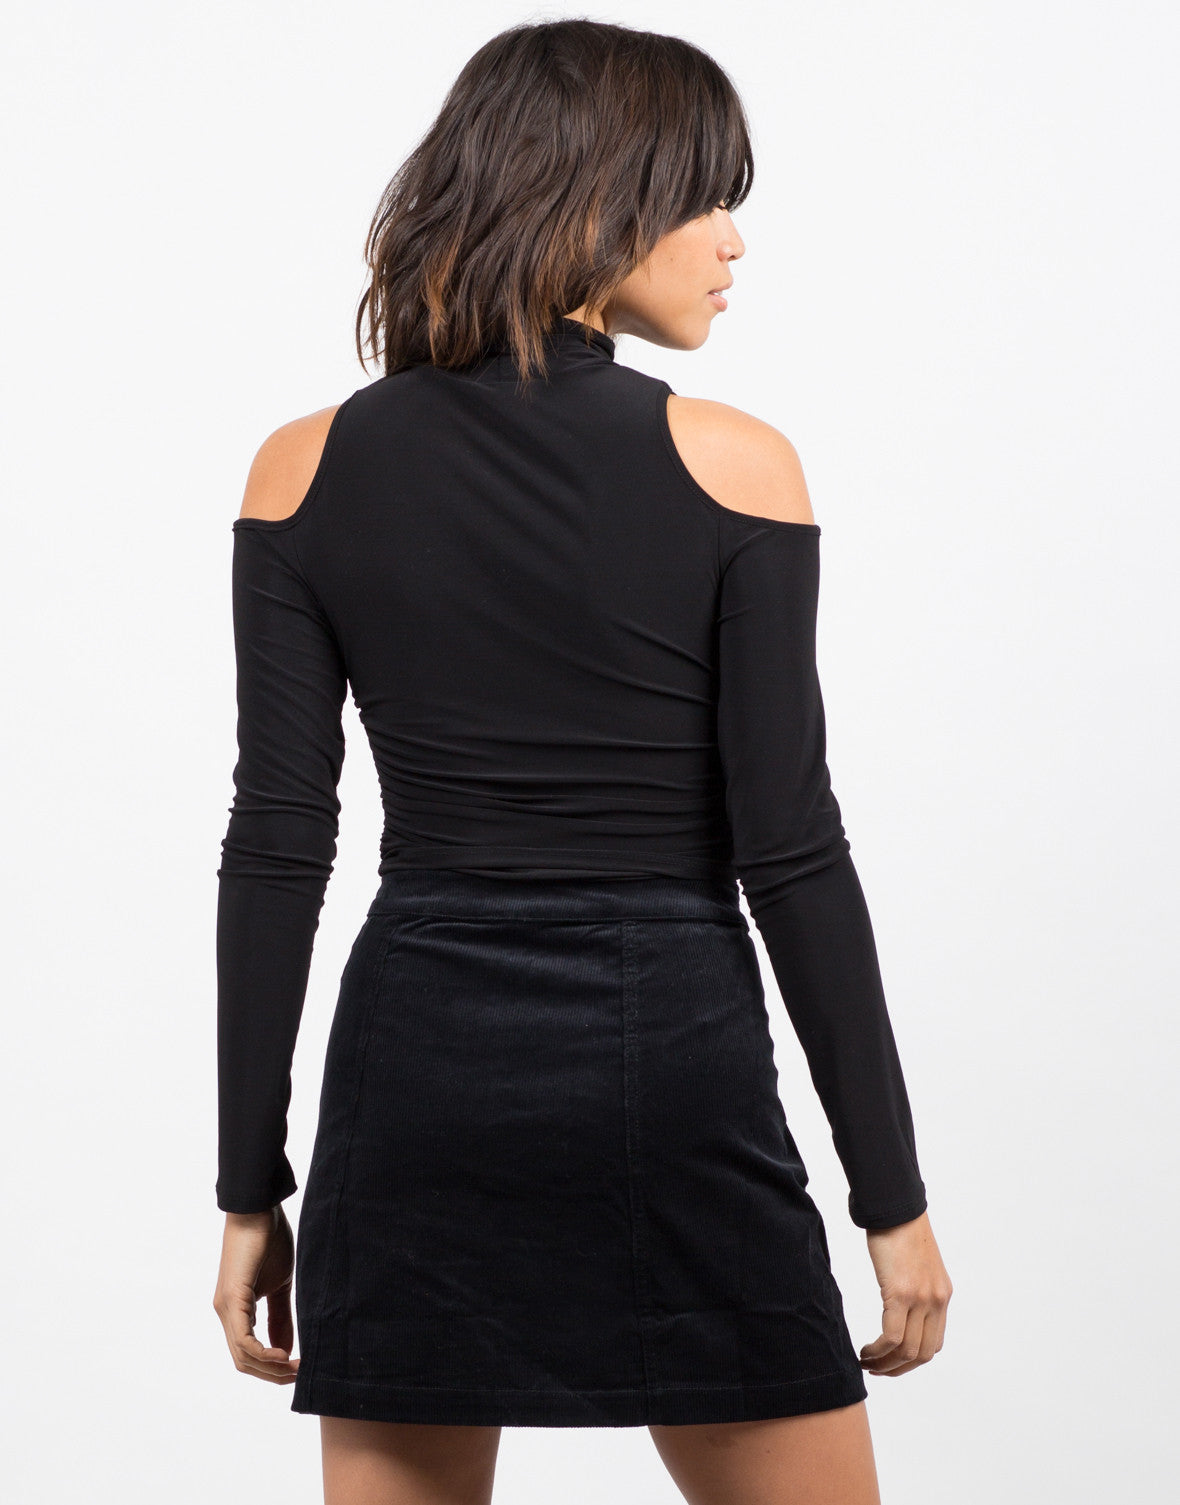 Back View of Cold Shoulder Crop Top